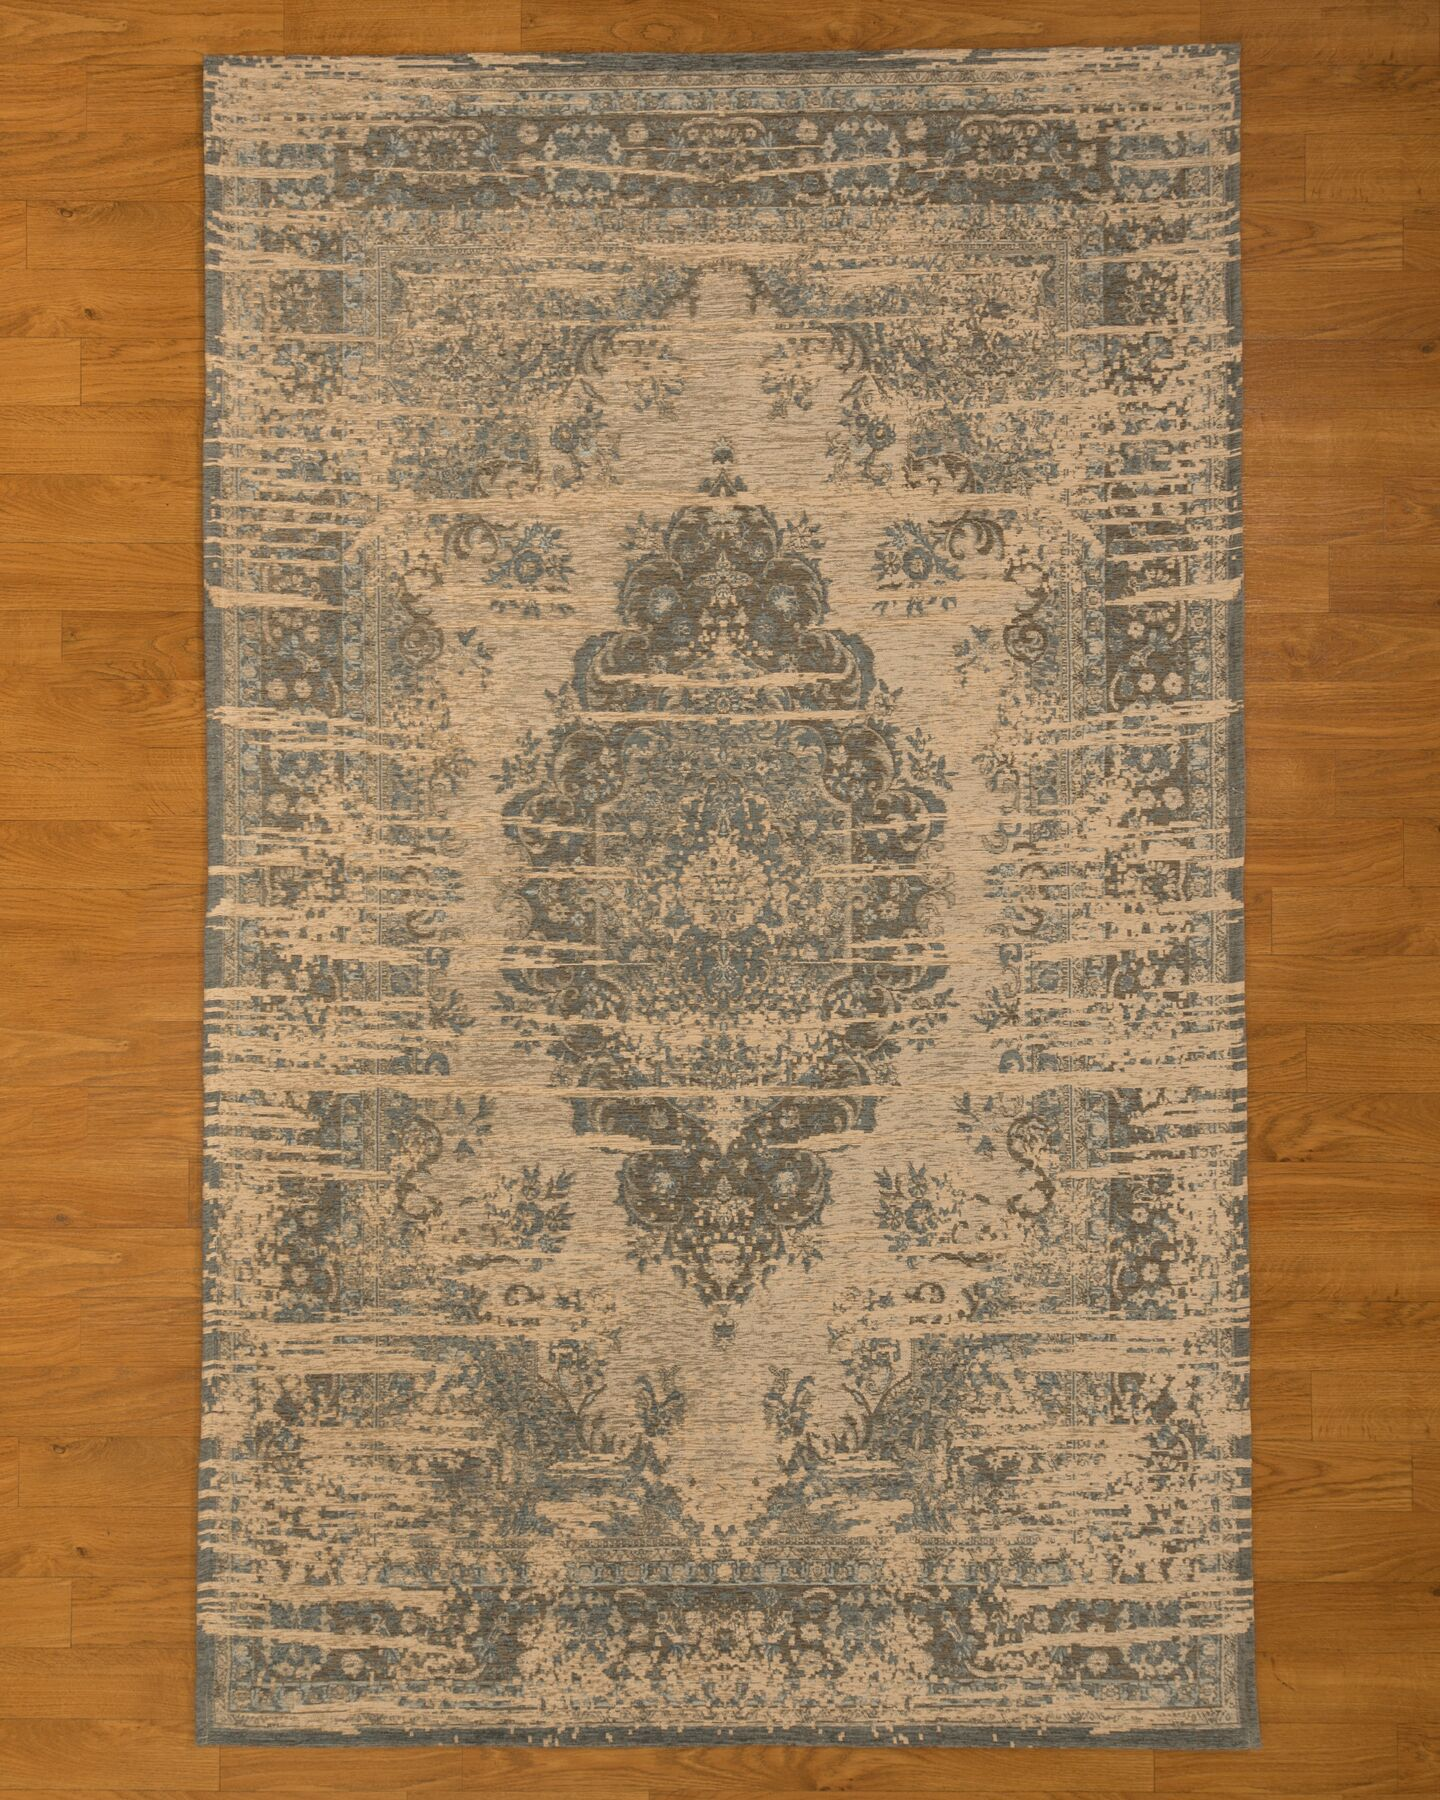 Antelope Gray/Blue Area Rug Rug Size: Rectangle 6' x 9'